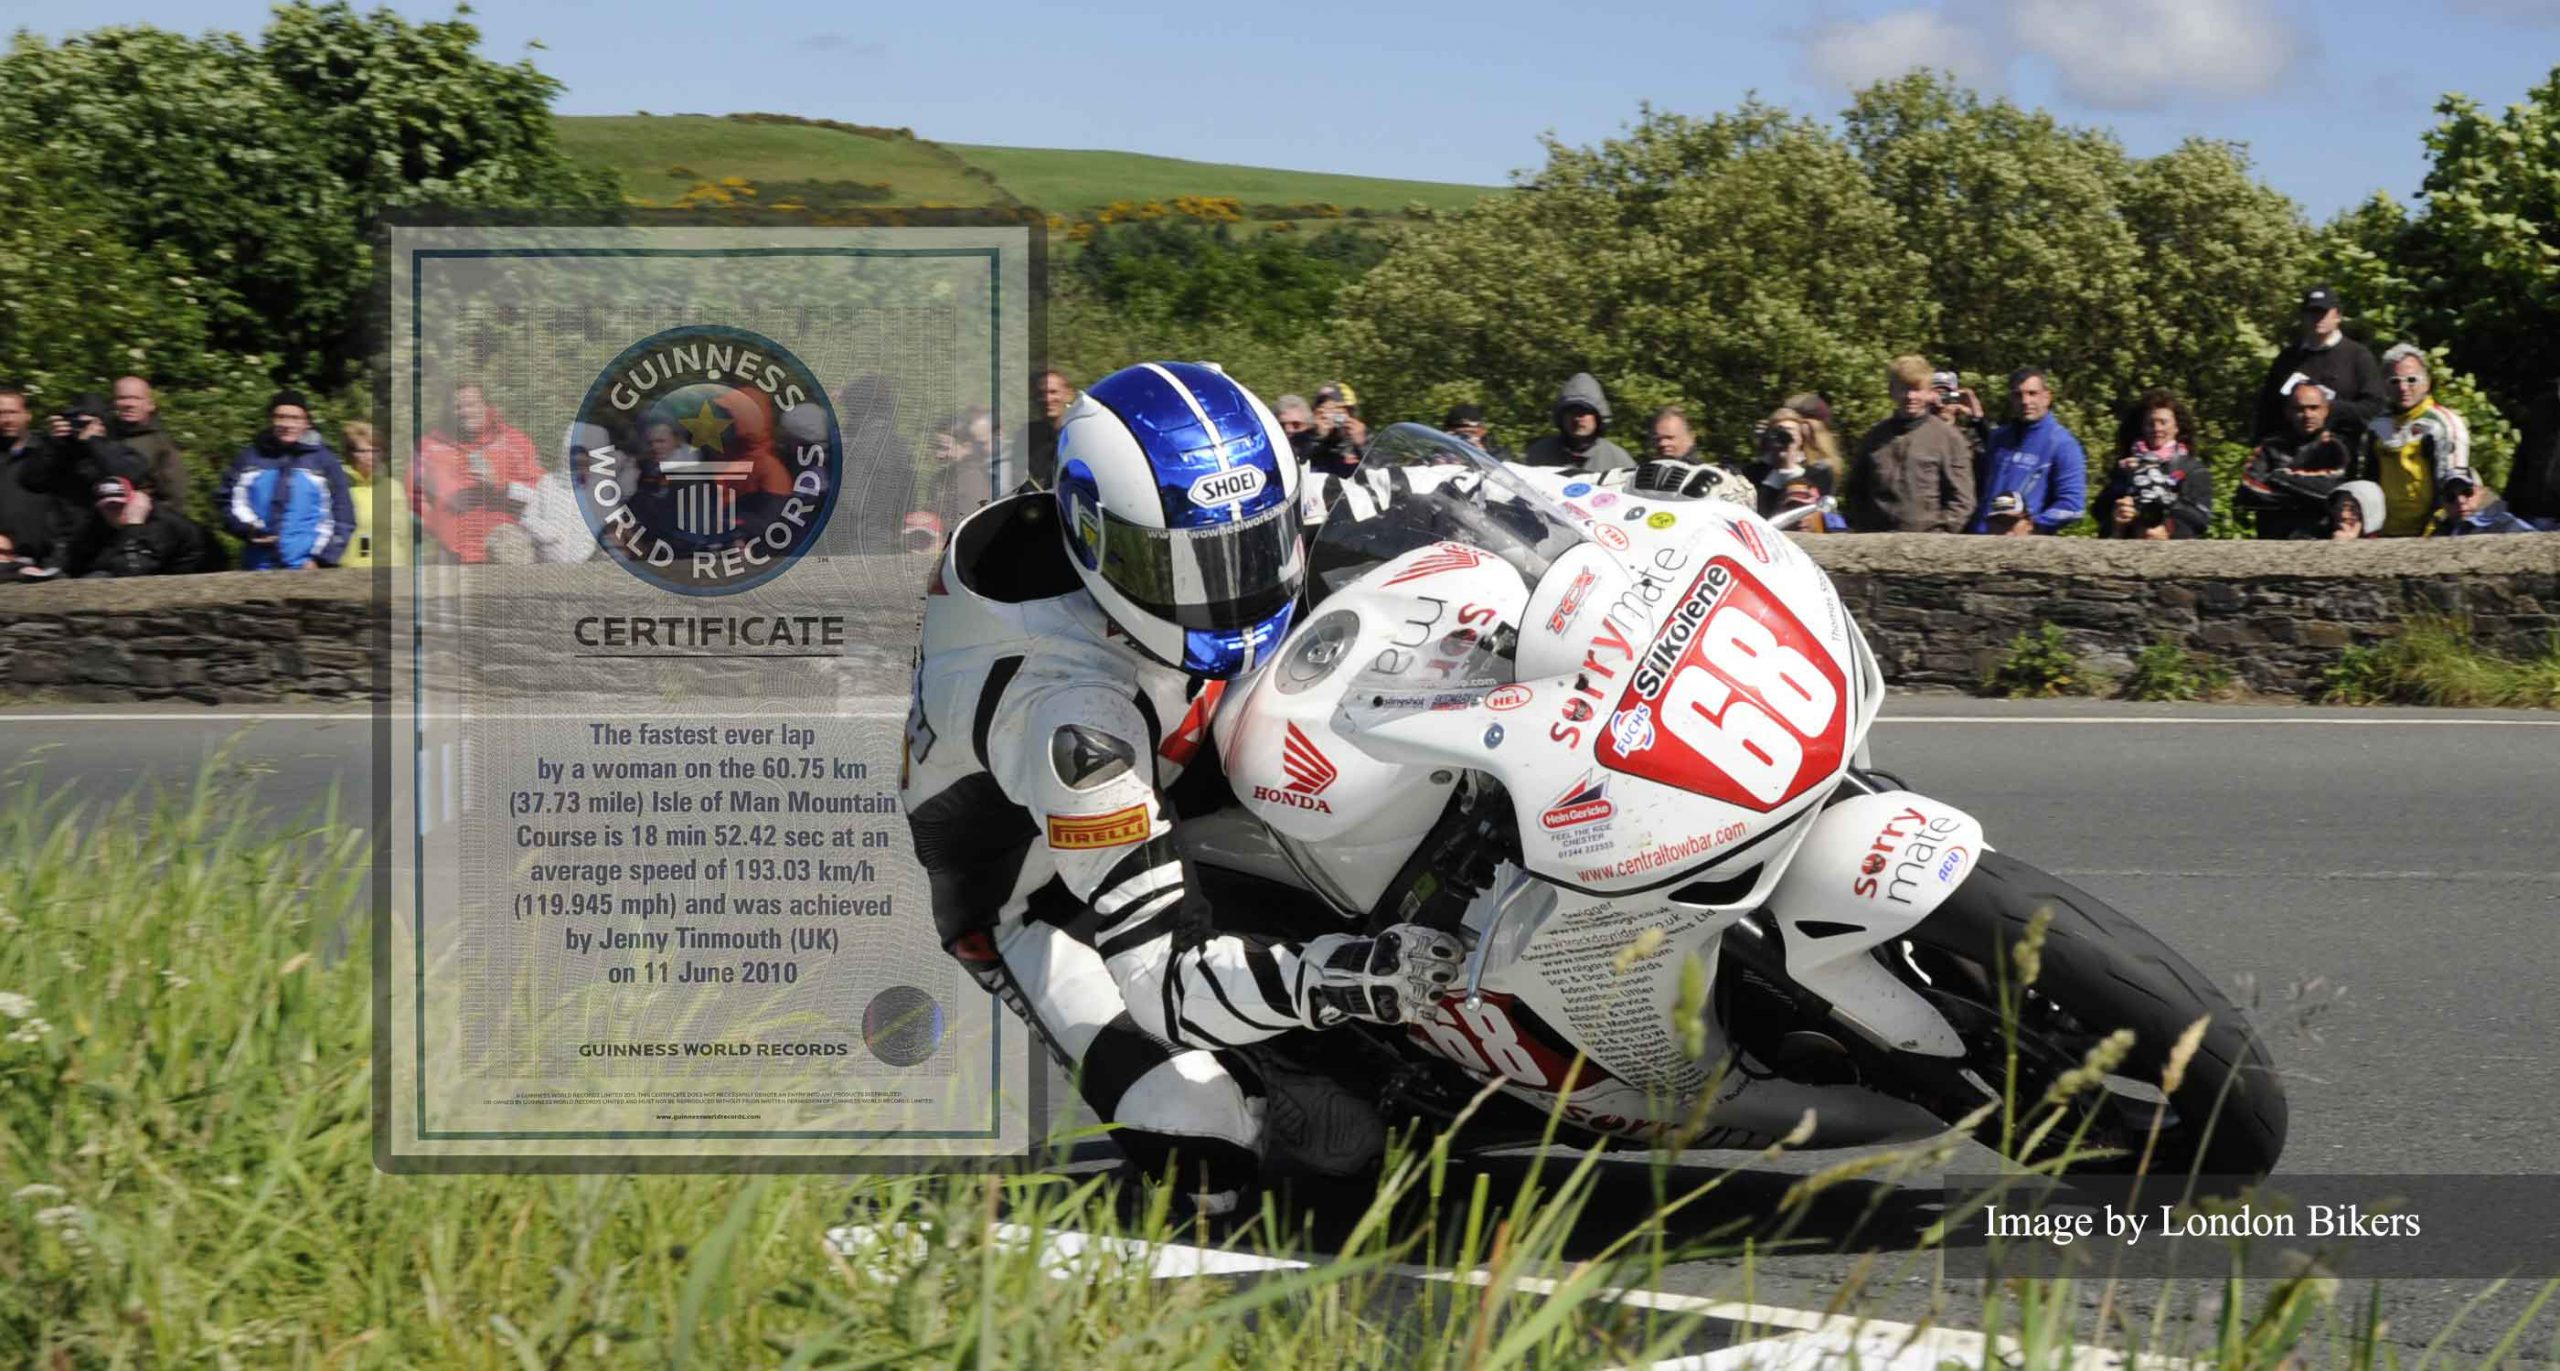 Jenny Tinmouth IOM TT at the Gooseneck Image